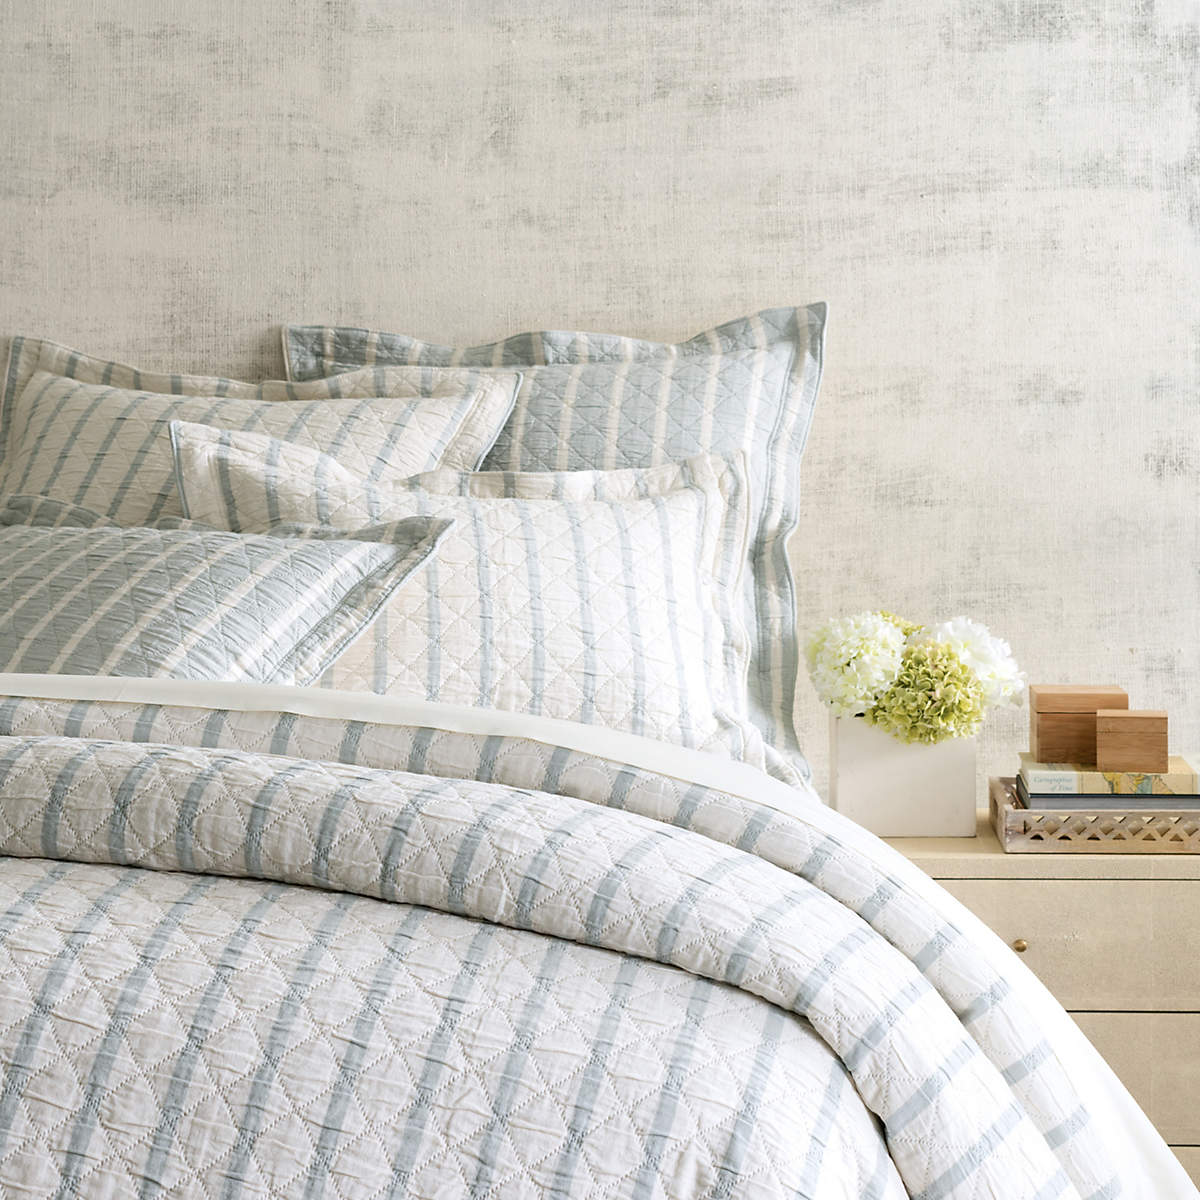 Matelasse Bedspreads | Chenille Bedspreads for Sale | Silver Coverlet